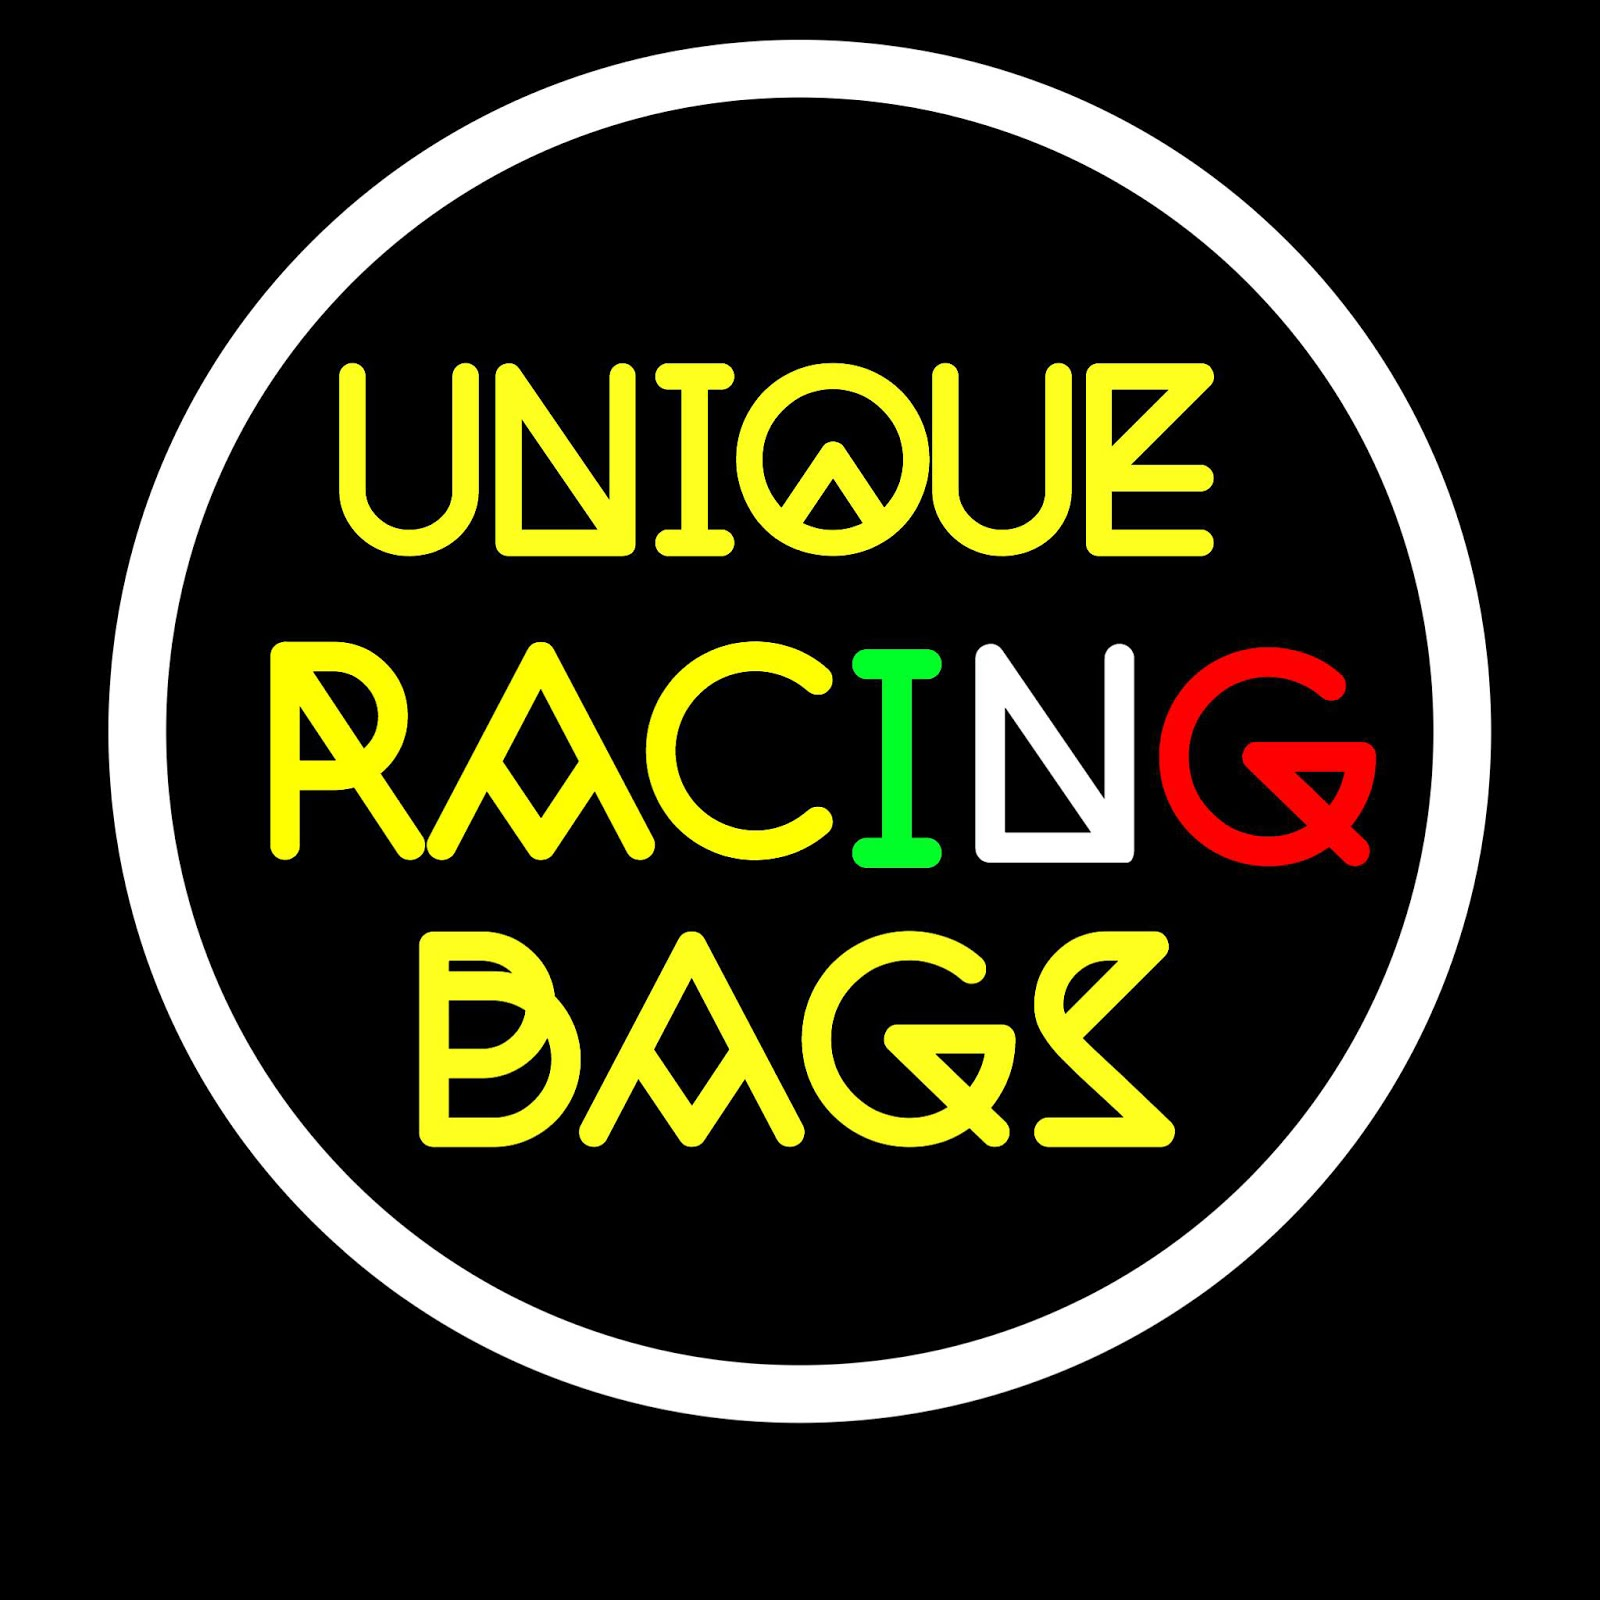 UNQUE RACING BAGS